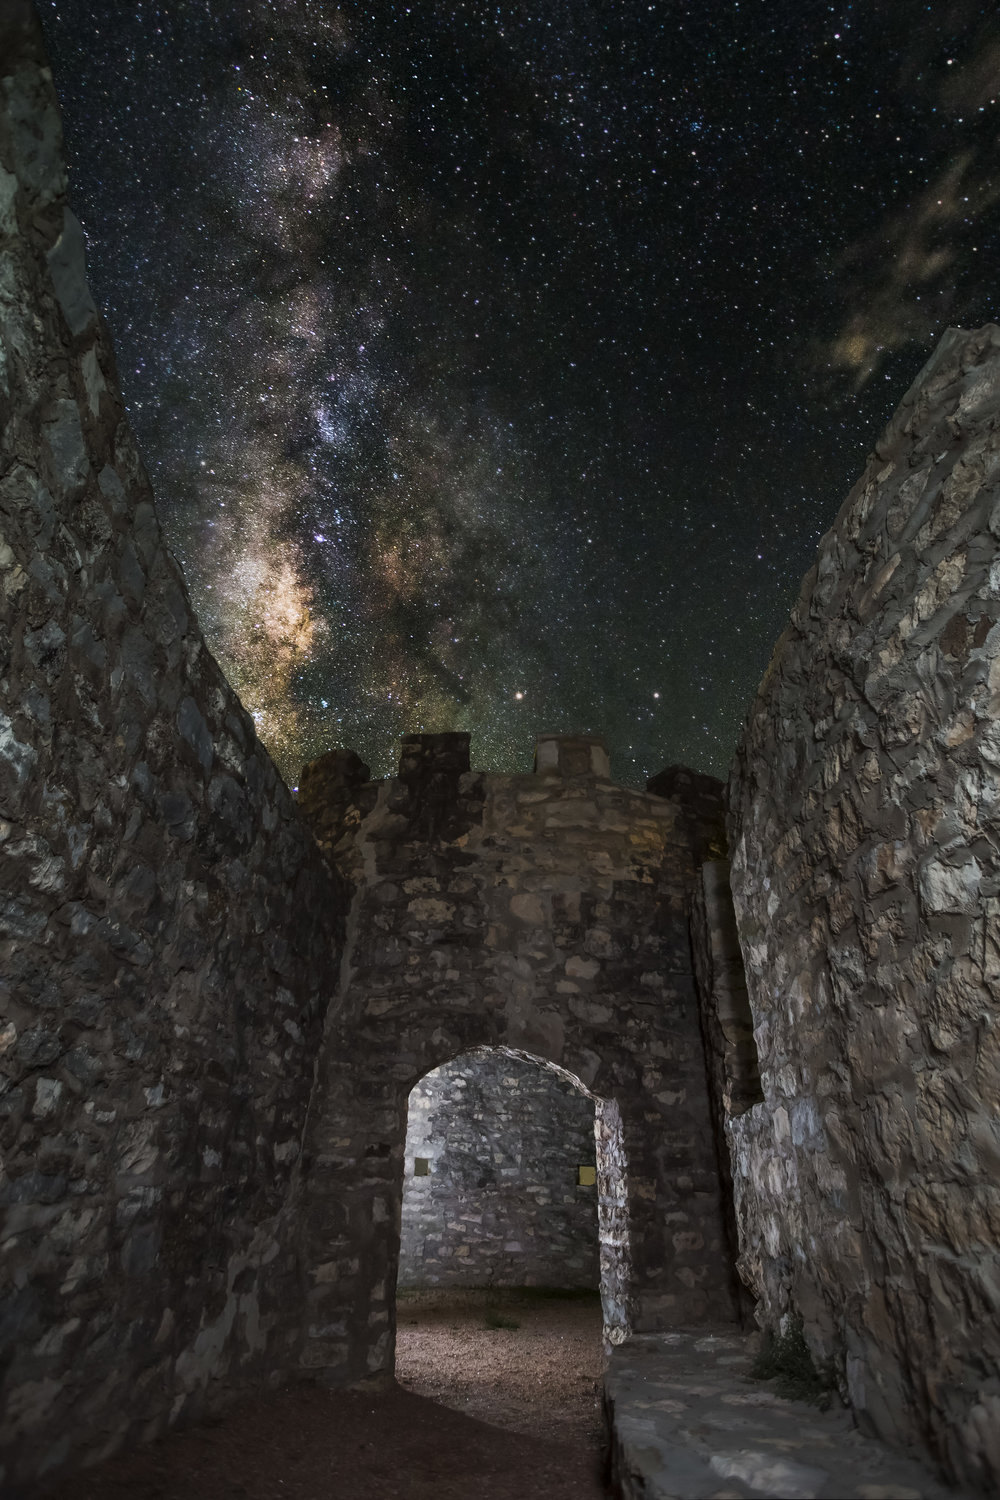 The Milky Way from inside the walls of Presidio de San Saba.